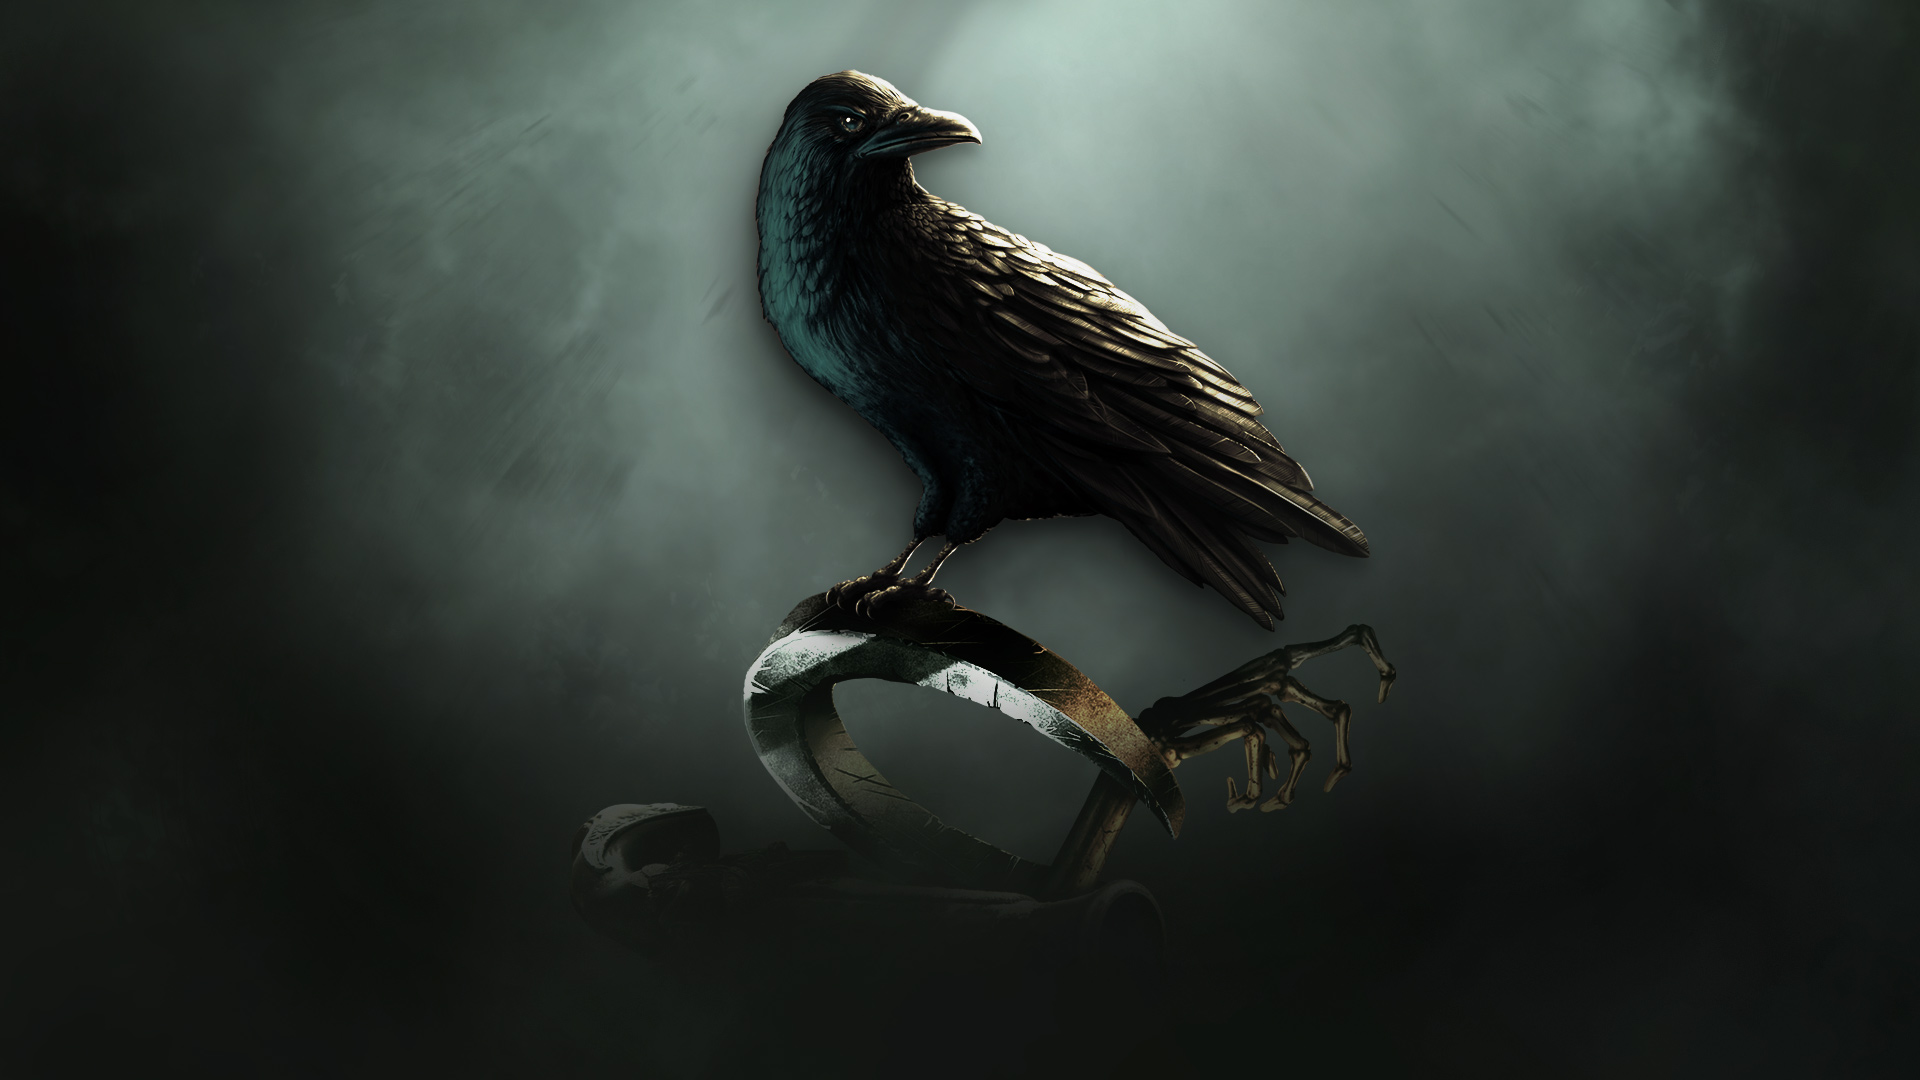 1920x1080 - Raven Wallpapers 19